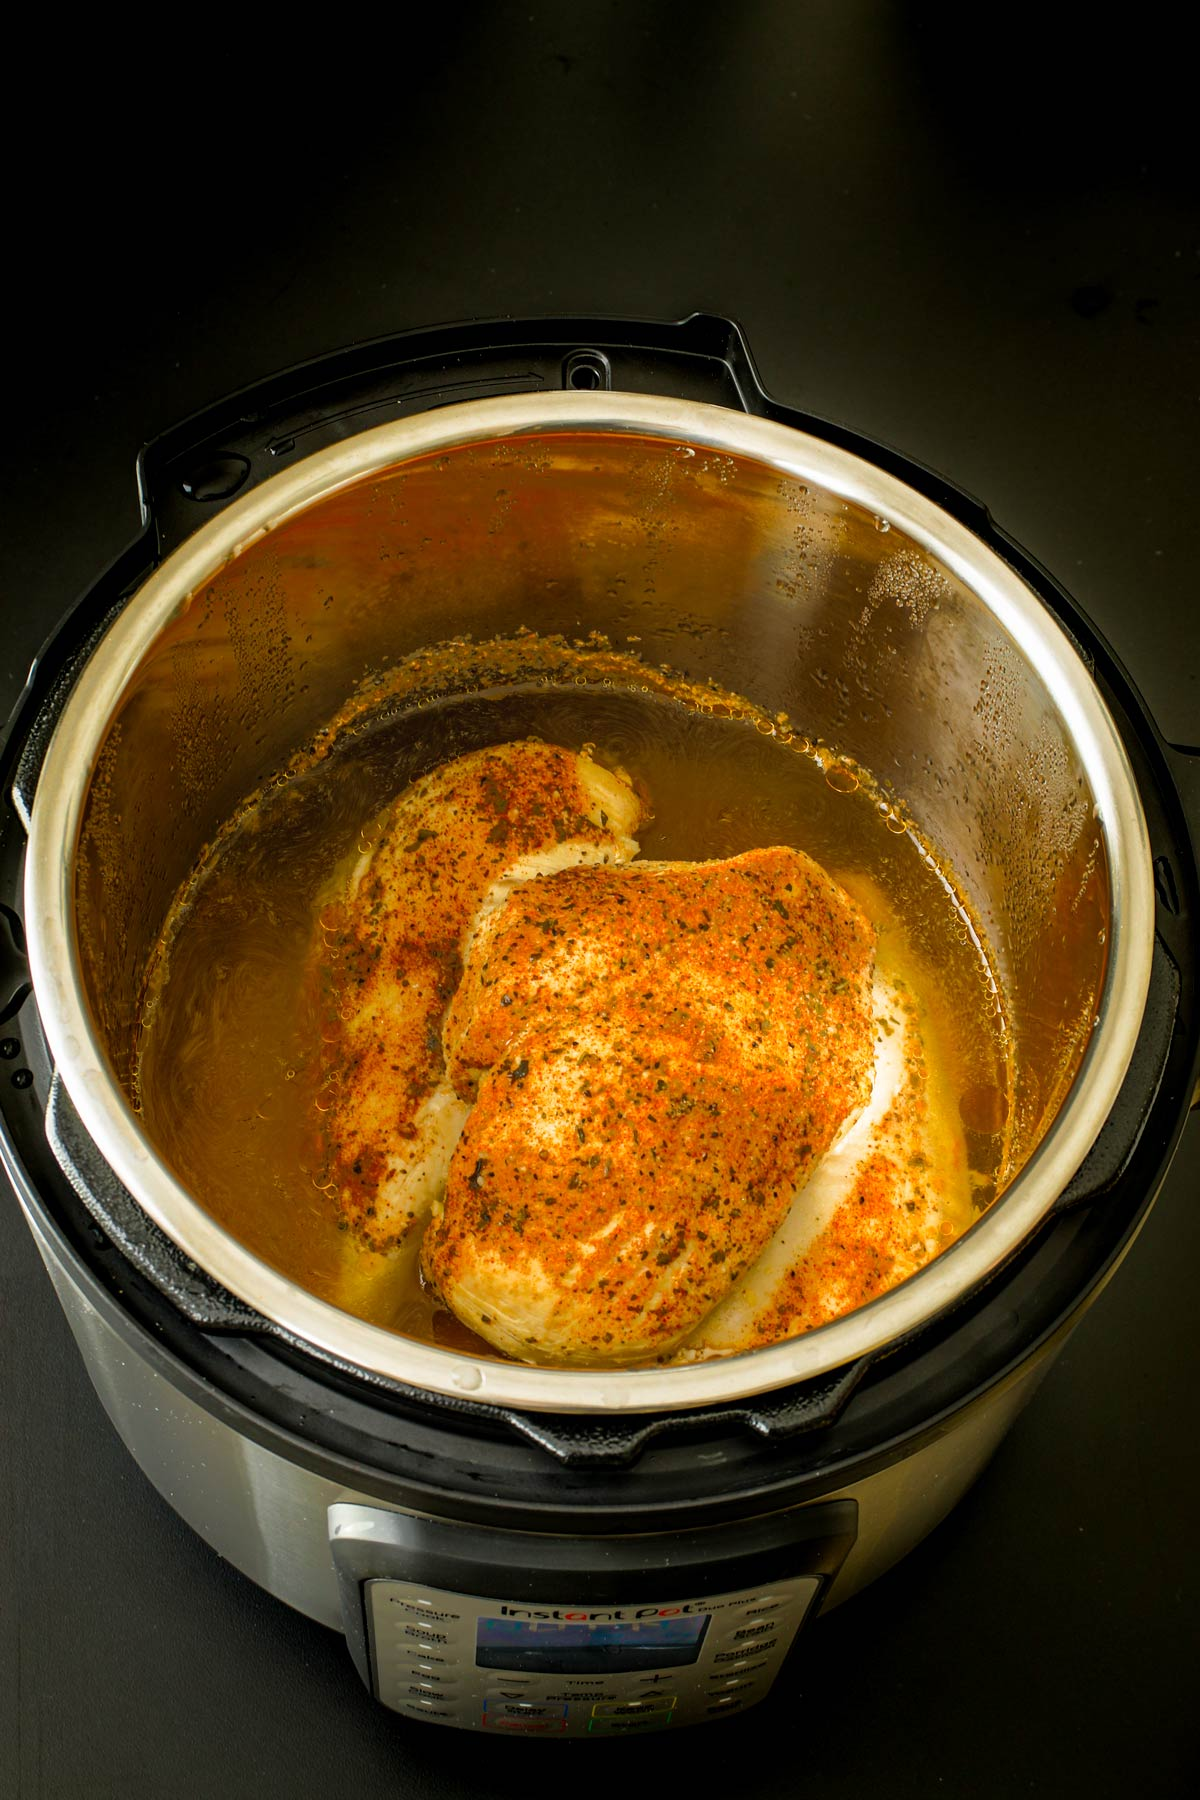 cooked chicken in broth in pressure cooker.